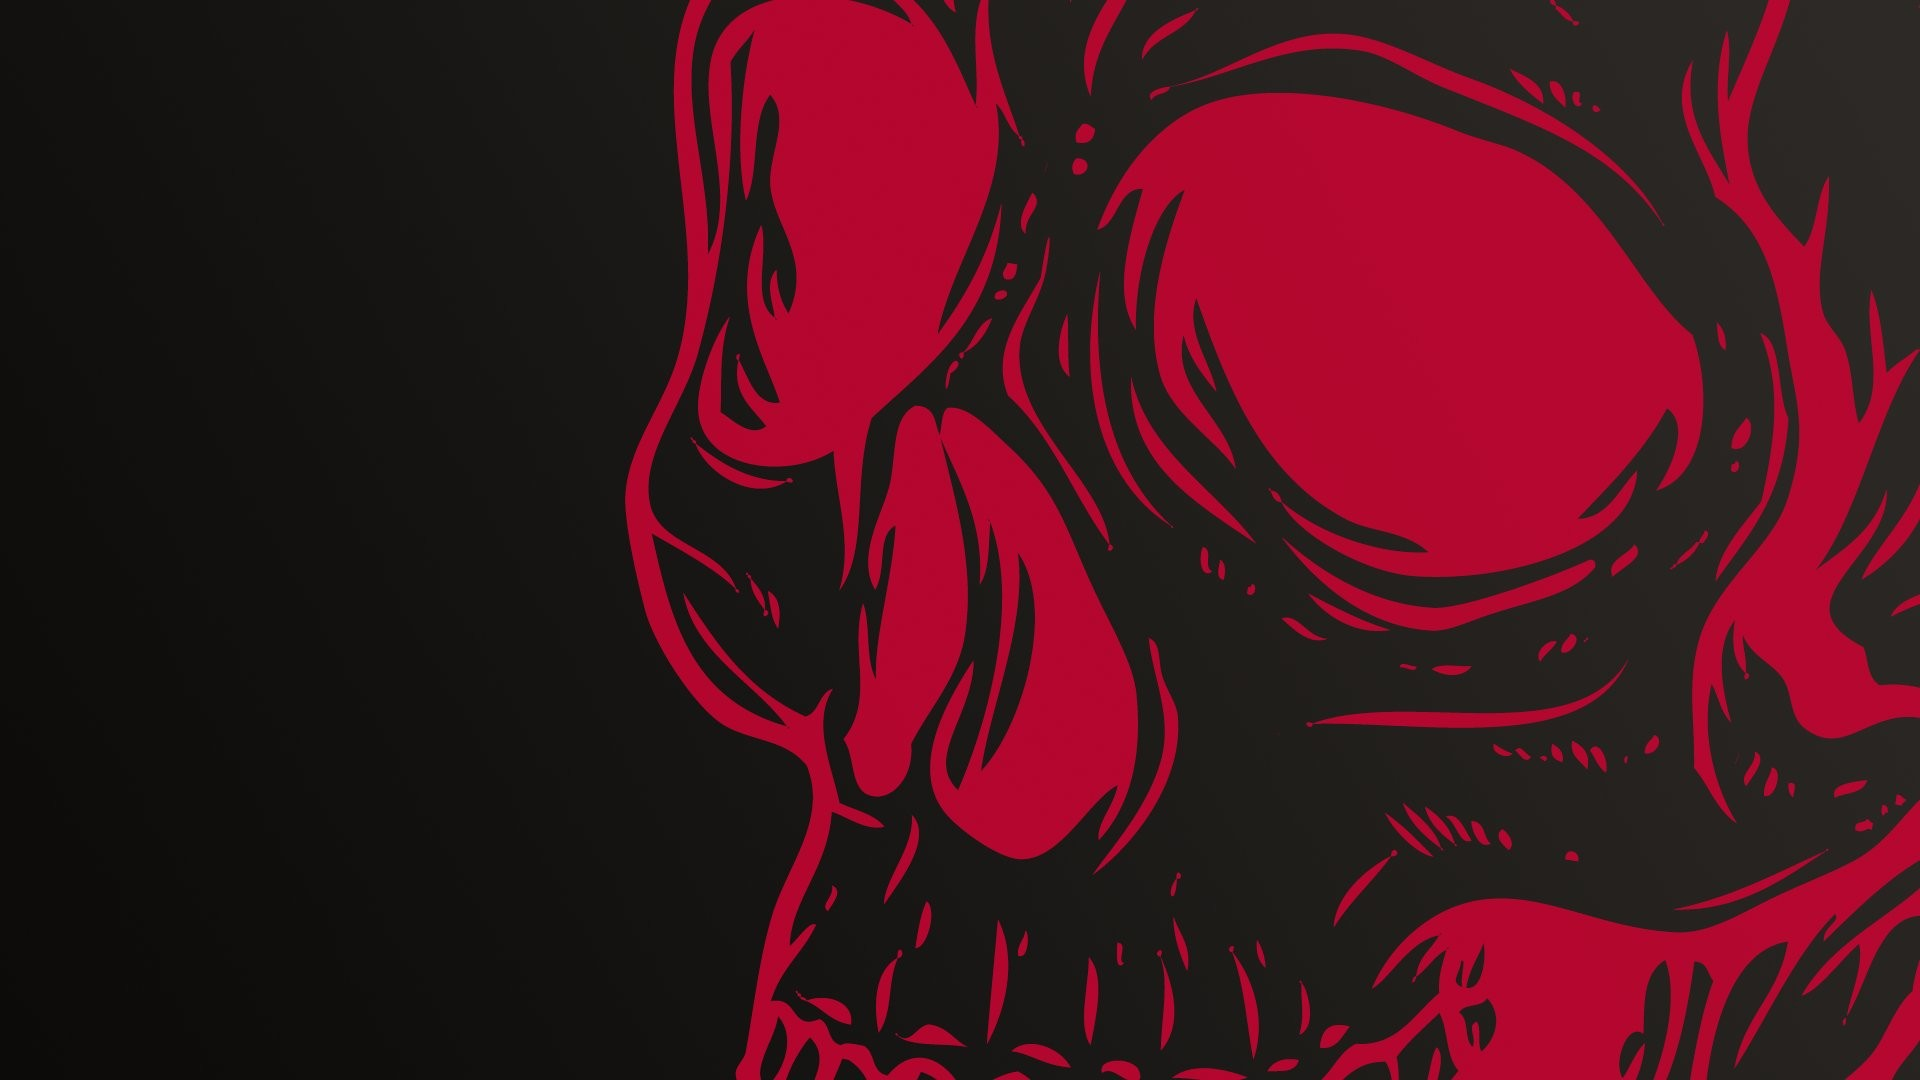 Skull Wallpapers Group 1920×1080 Red And Black Skull Wallpapers   Adorable  Wallpapers